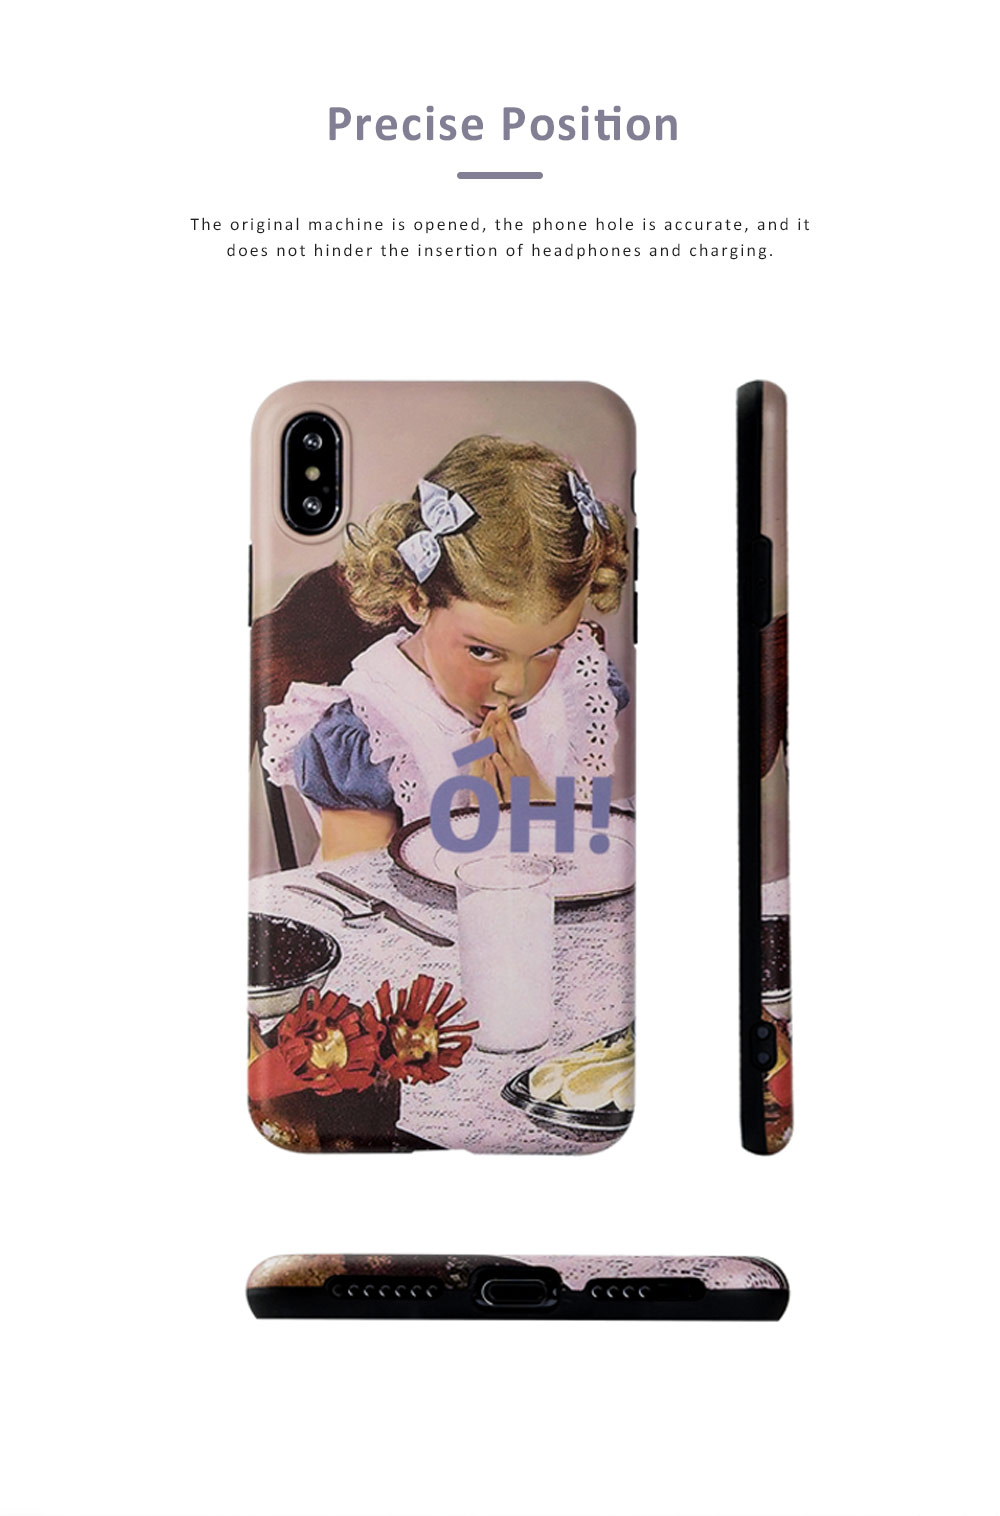 Retro Girl Mobile Phone Case for Apple, All-Inclusive Anti-Drop Soft Plastic Phone Shell Back Cover for iPhone 7 7 Plus 8 8 Plus X XS MAX XR 1